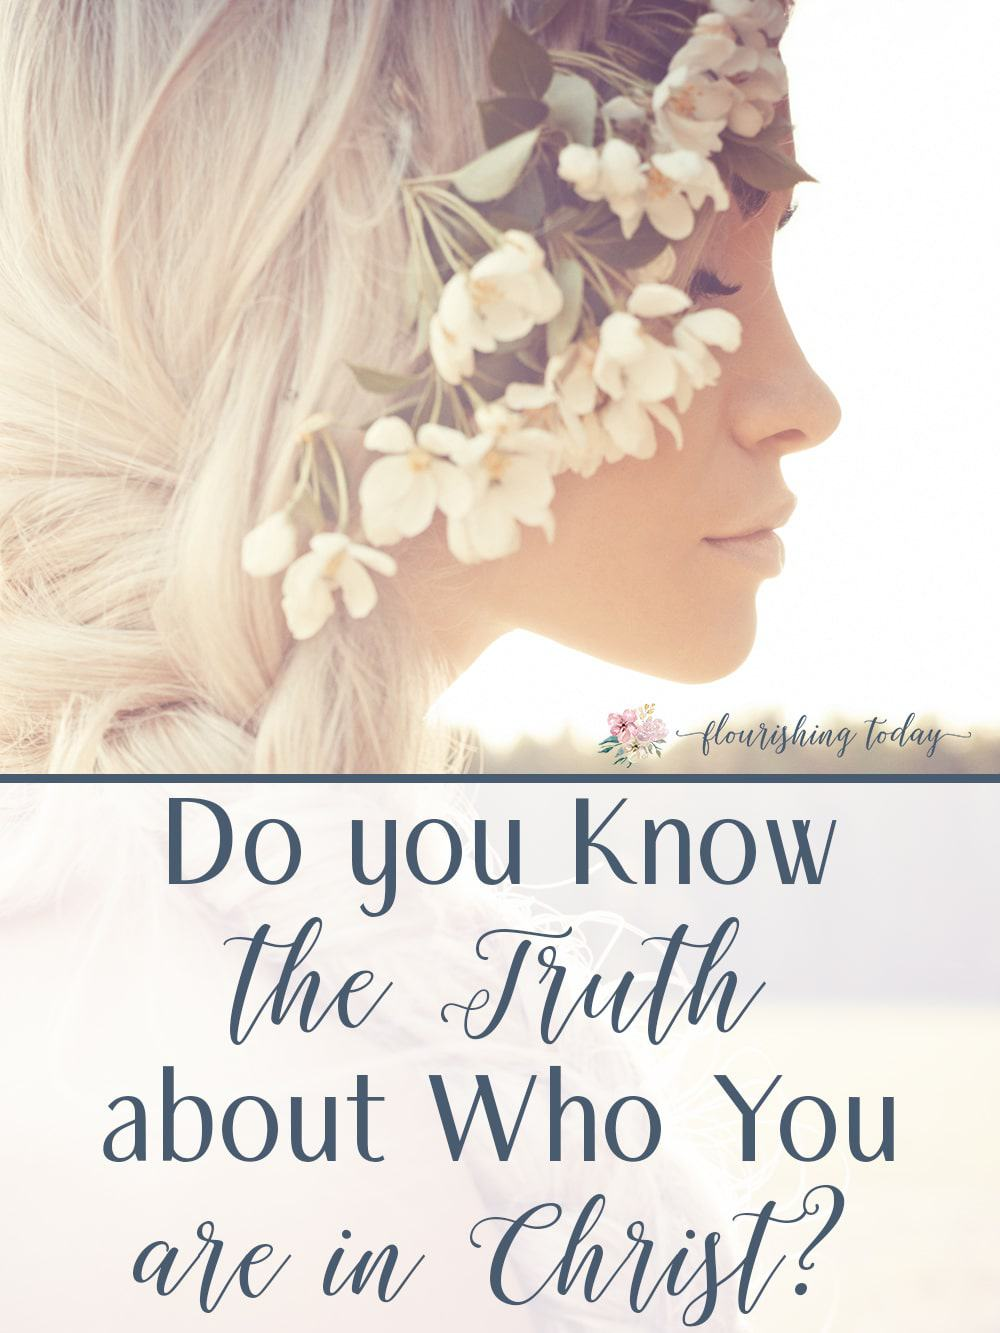 What lies have you believed about who you are? God's Word provides truth about our identity. Here you'll find out the truth about who you are in Christ.